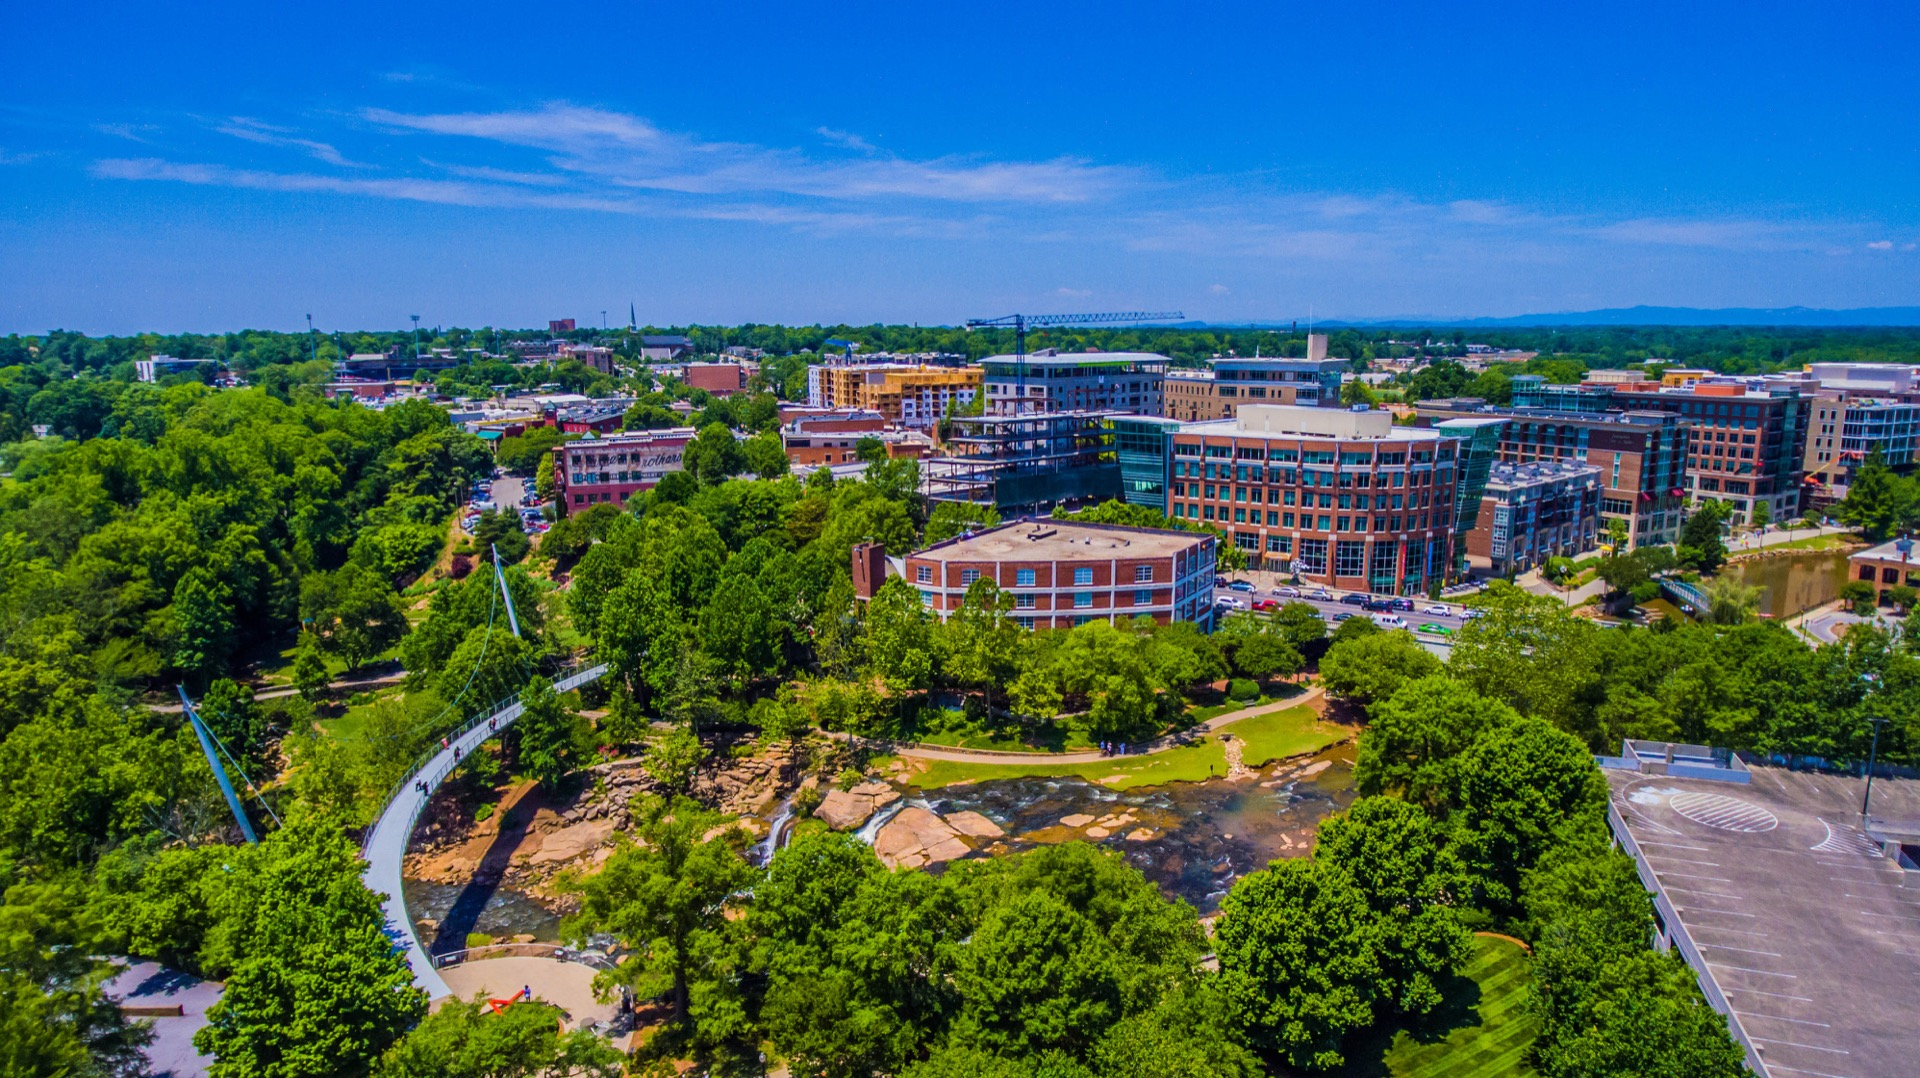 Downtown Greenville, SC skyline